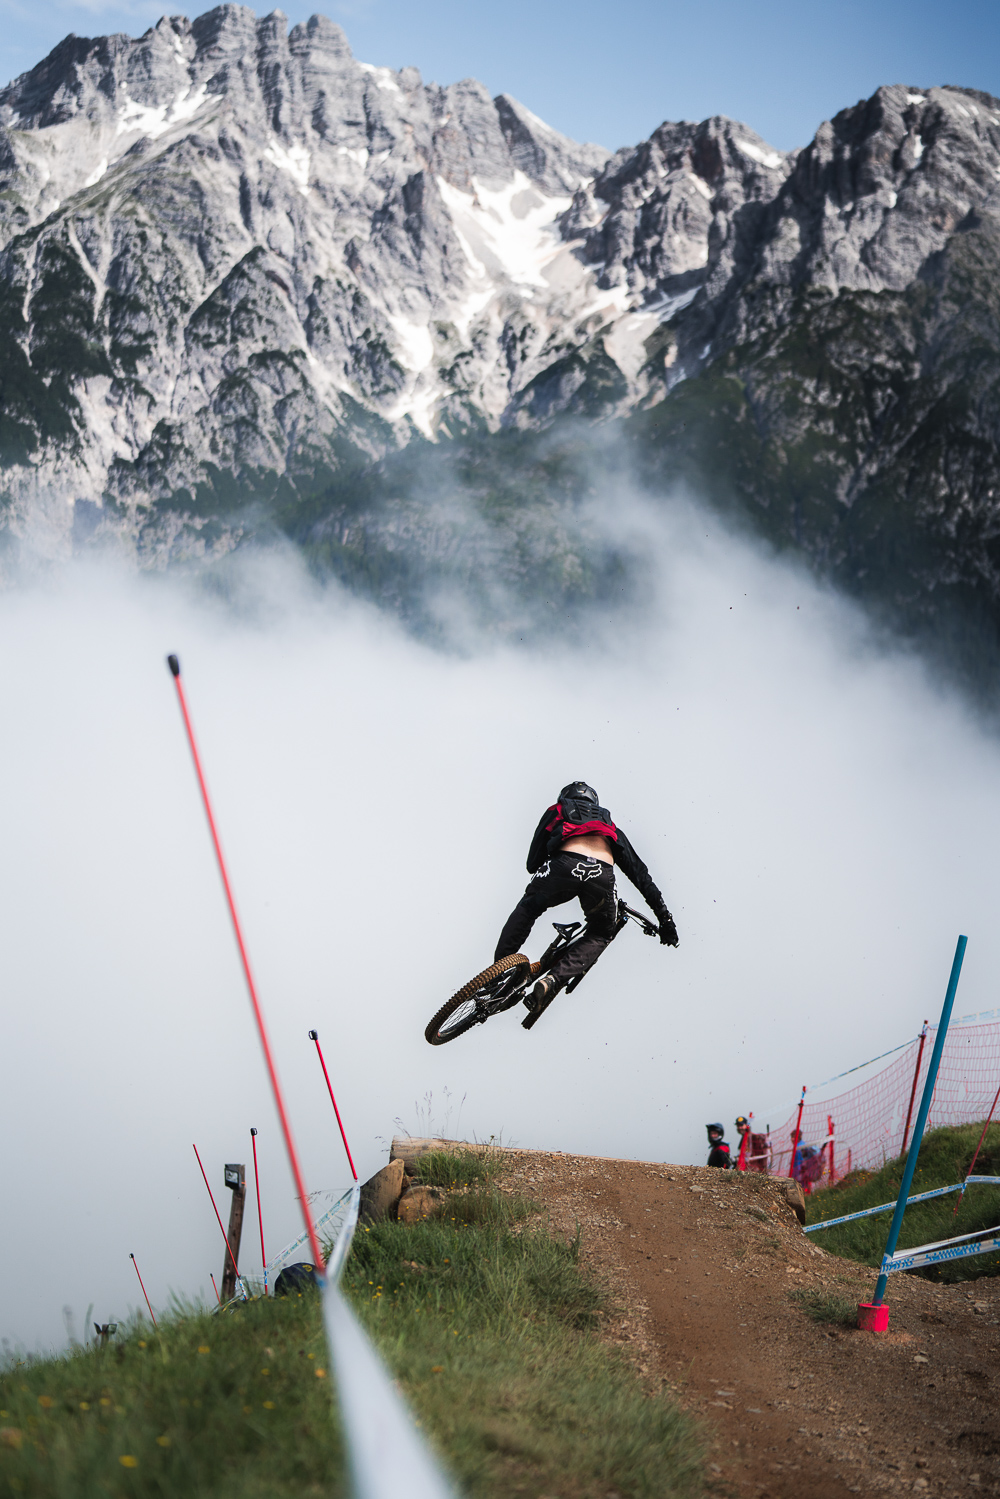 Dramatic pictures are always a given in Leogang!